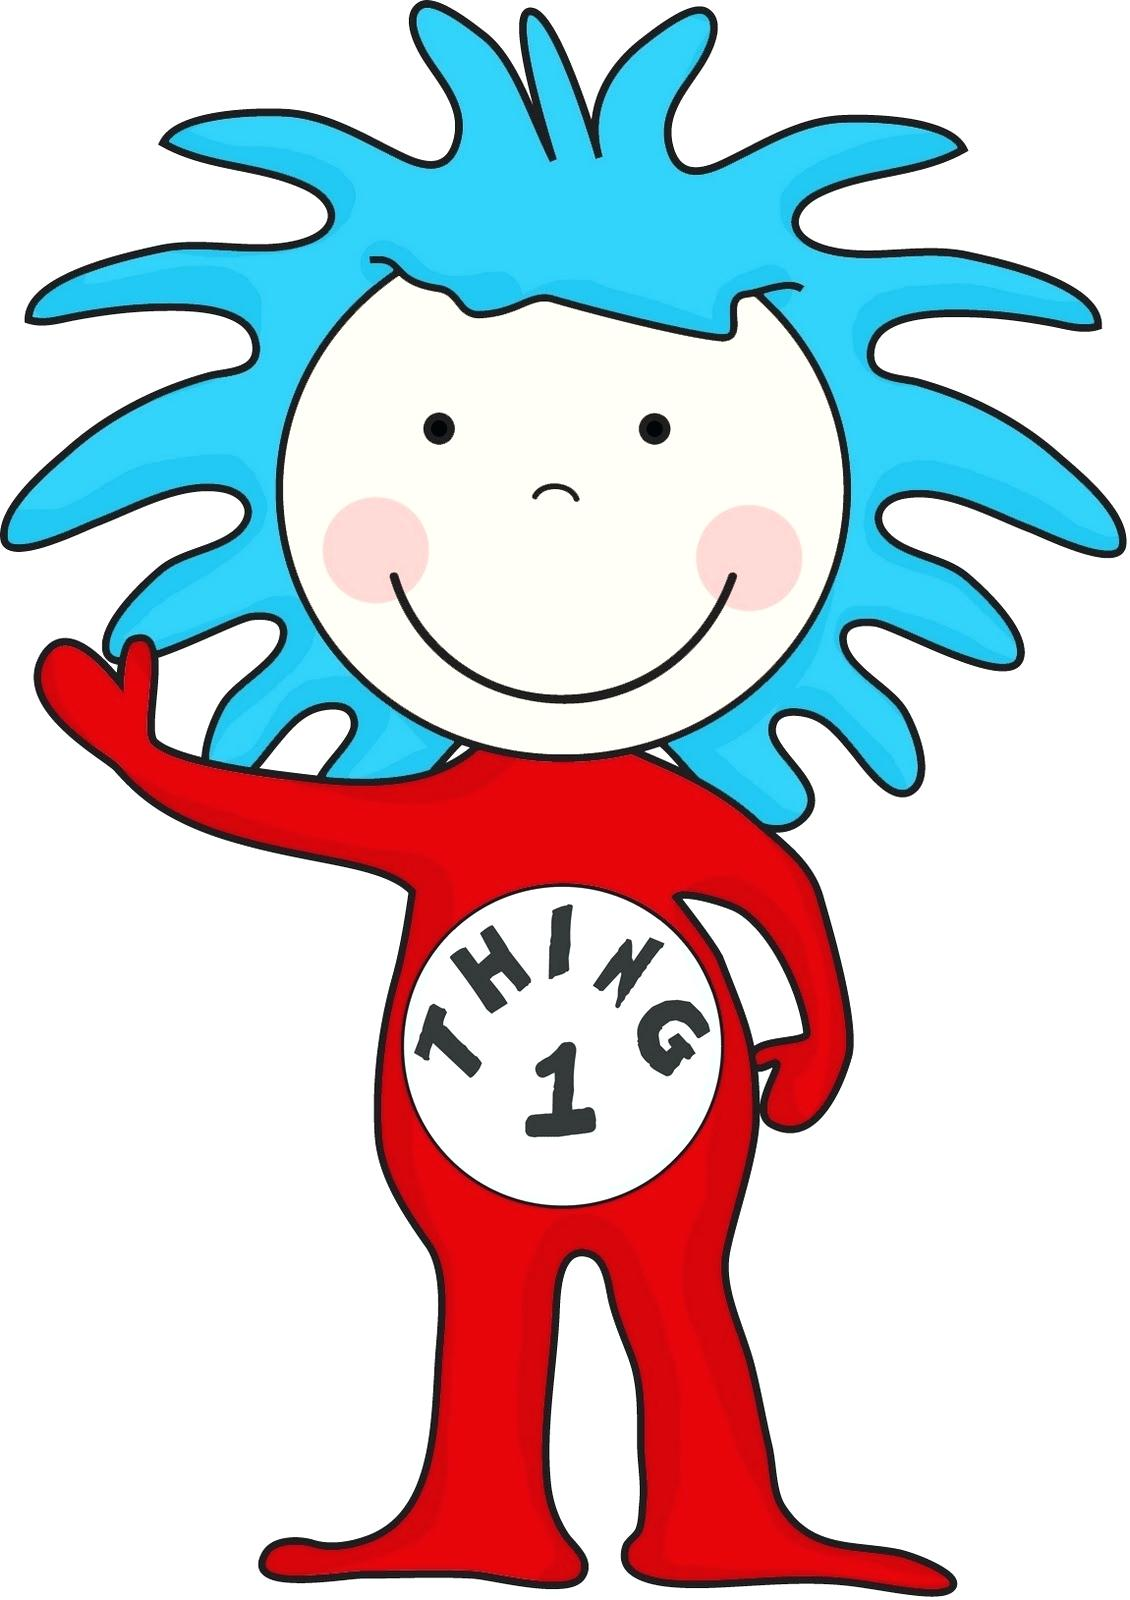 1130x1600 Coloring Page ~ Thing 1 And 2 Coloring Pages Clip Art Google